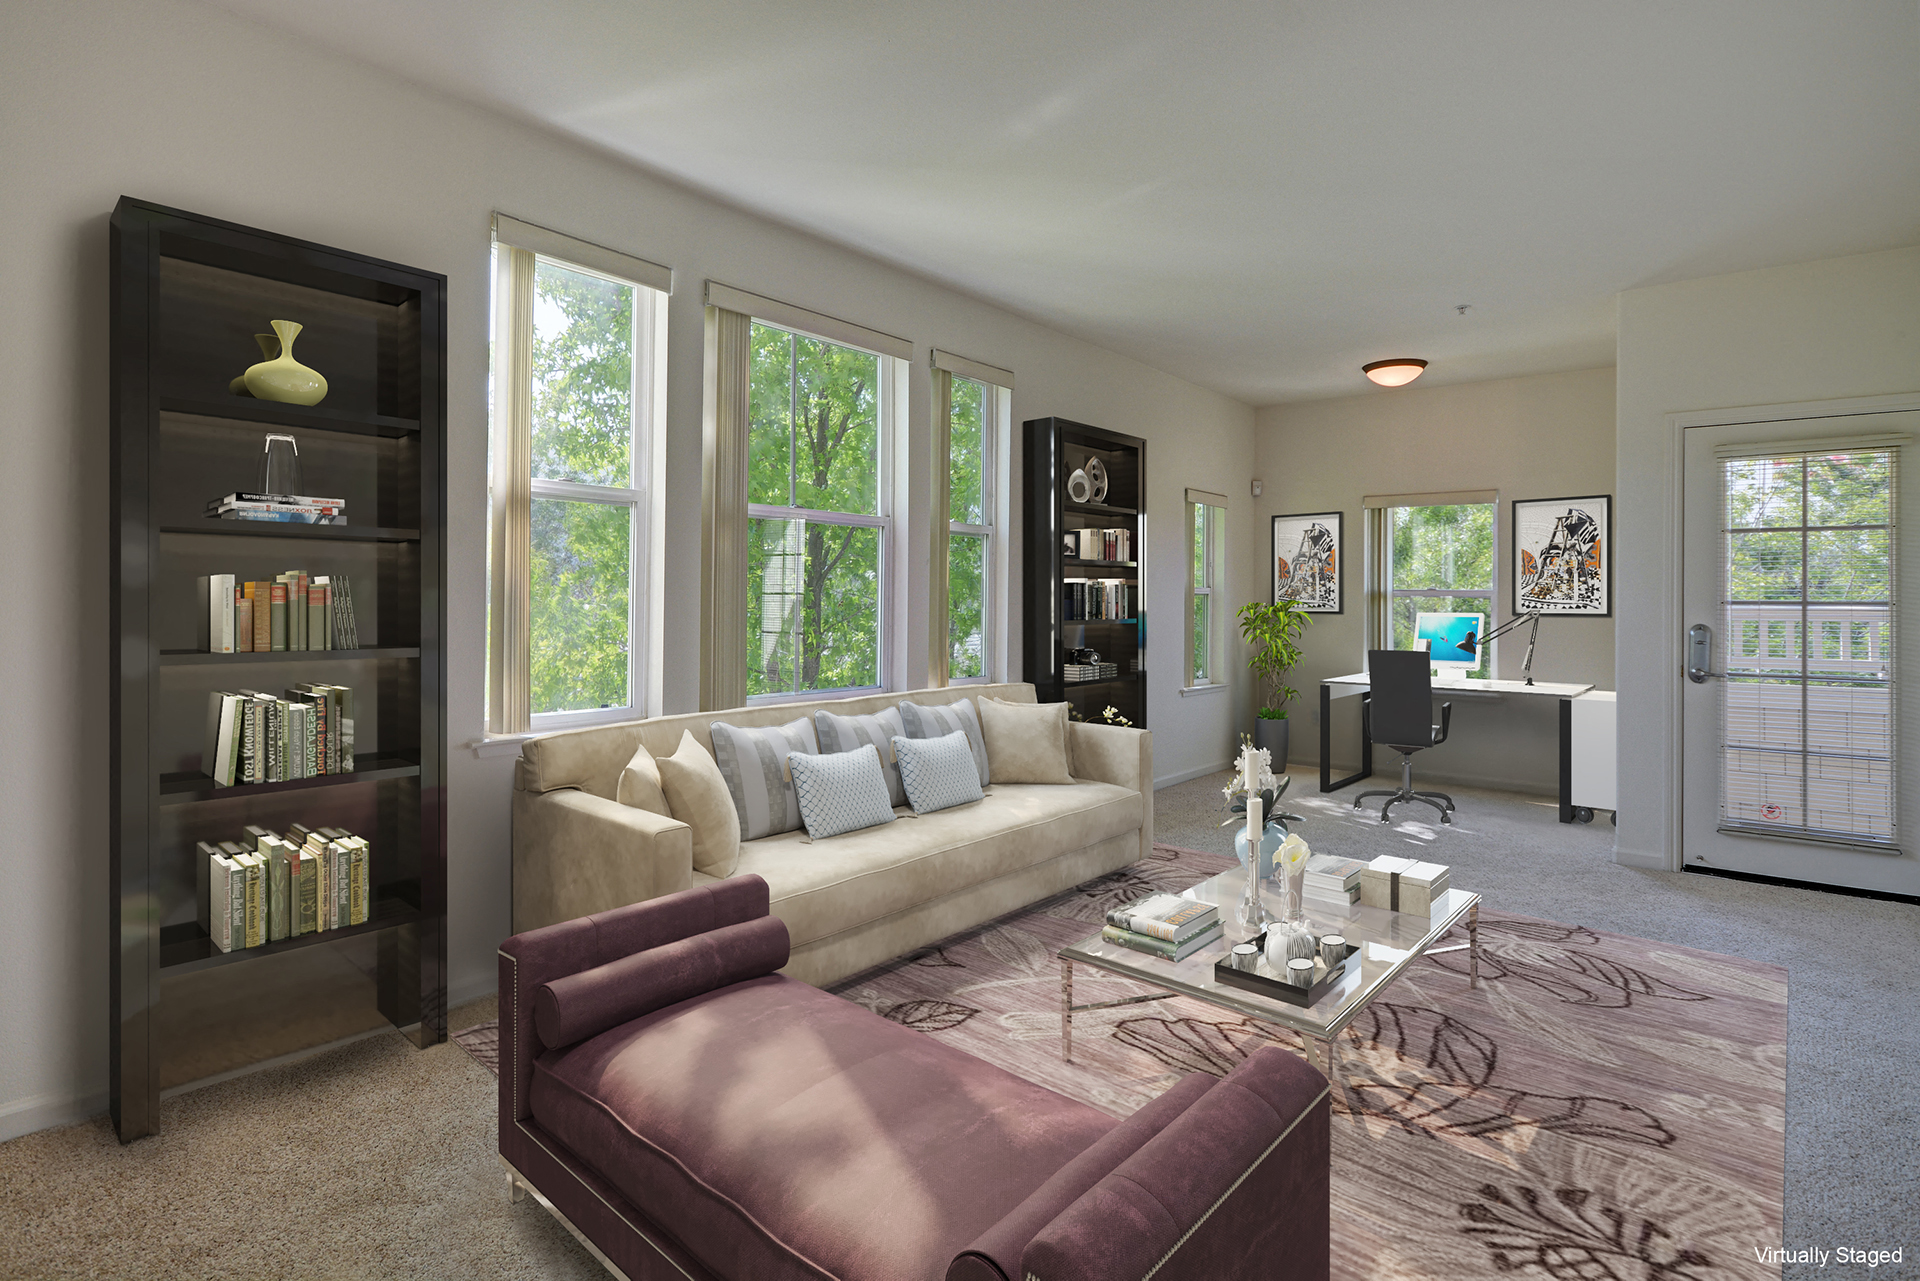 Fully Furnished Living Rooms At The Kensington, Pleasanton, CA, 94566